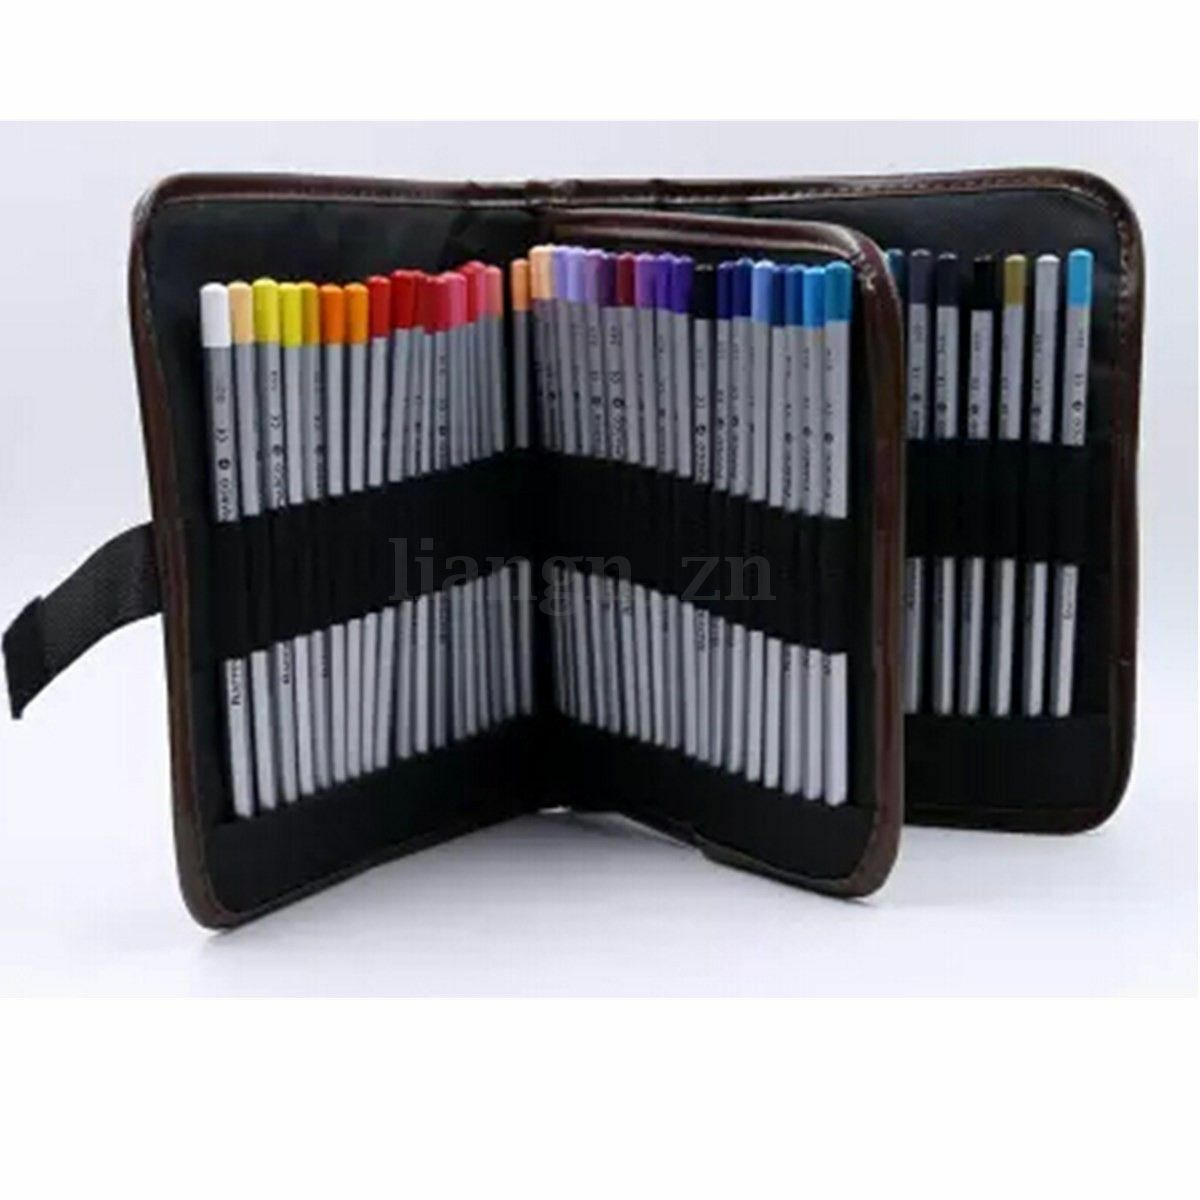 72 stylos trousse scolaire rangement maquillage sac crayon. Black Bedroom Furniture Sets. Home Design Ideas